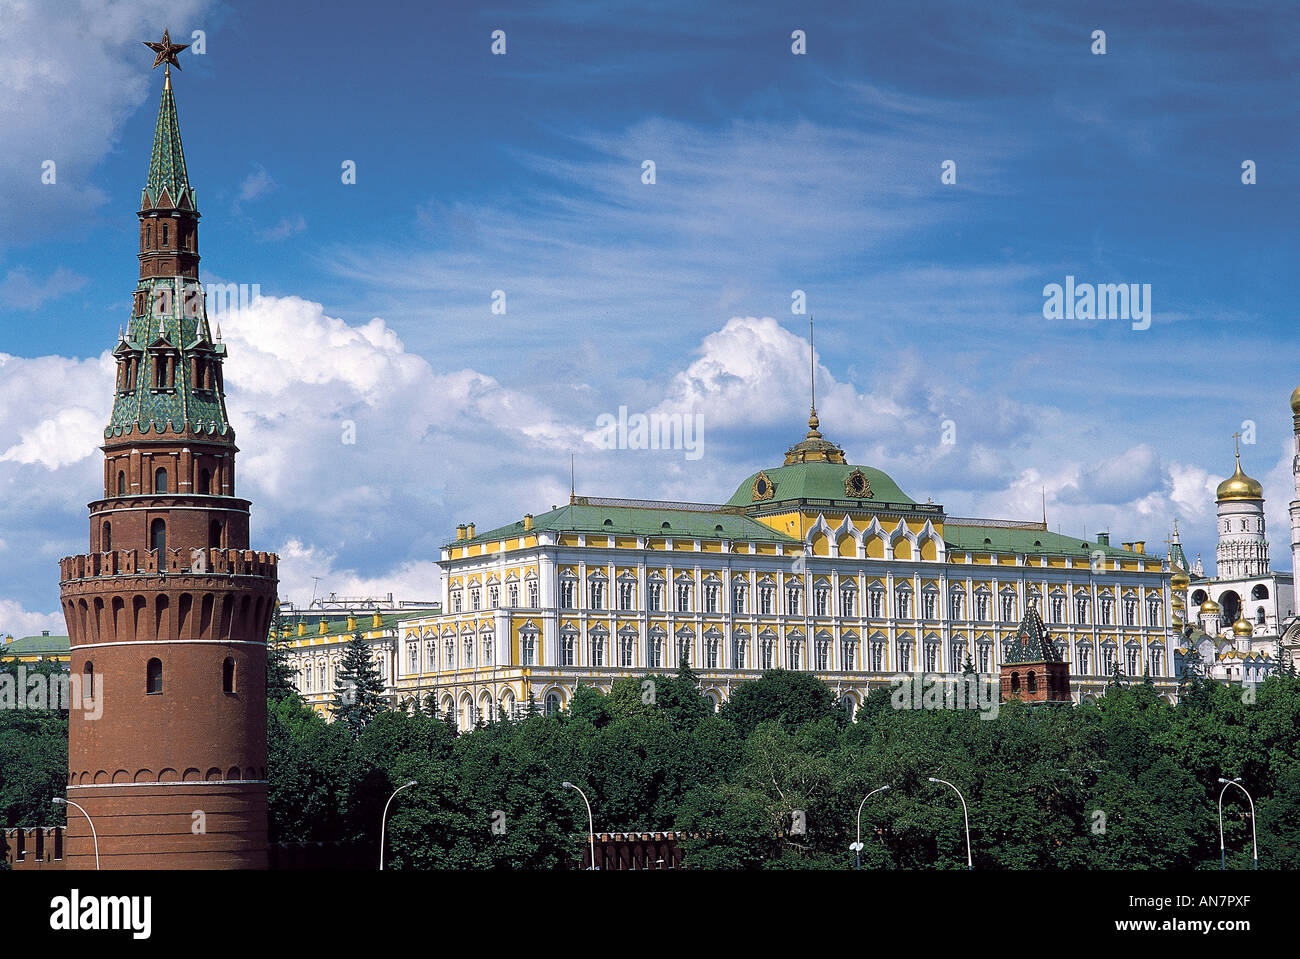 Located behind a bank of trees pierced by towers are the Russo Byzantine yellow walls of the Great Kremlin Palace which was built for Nicholas I in1838 49 and now serves as the meeting place for the Supreme Soviet Moscow - Stock Image